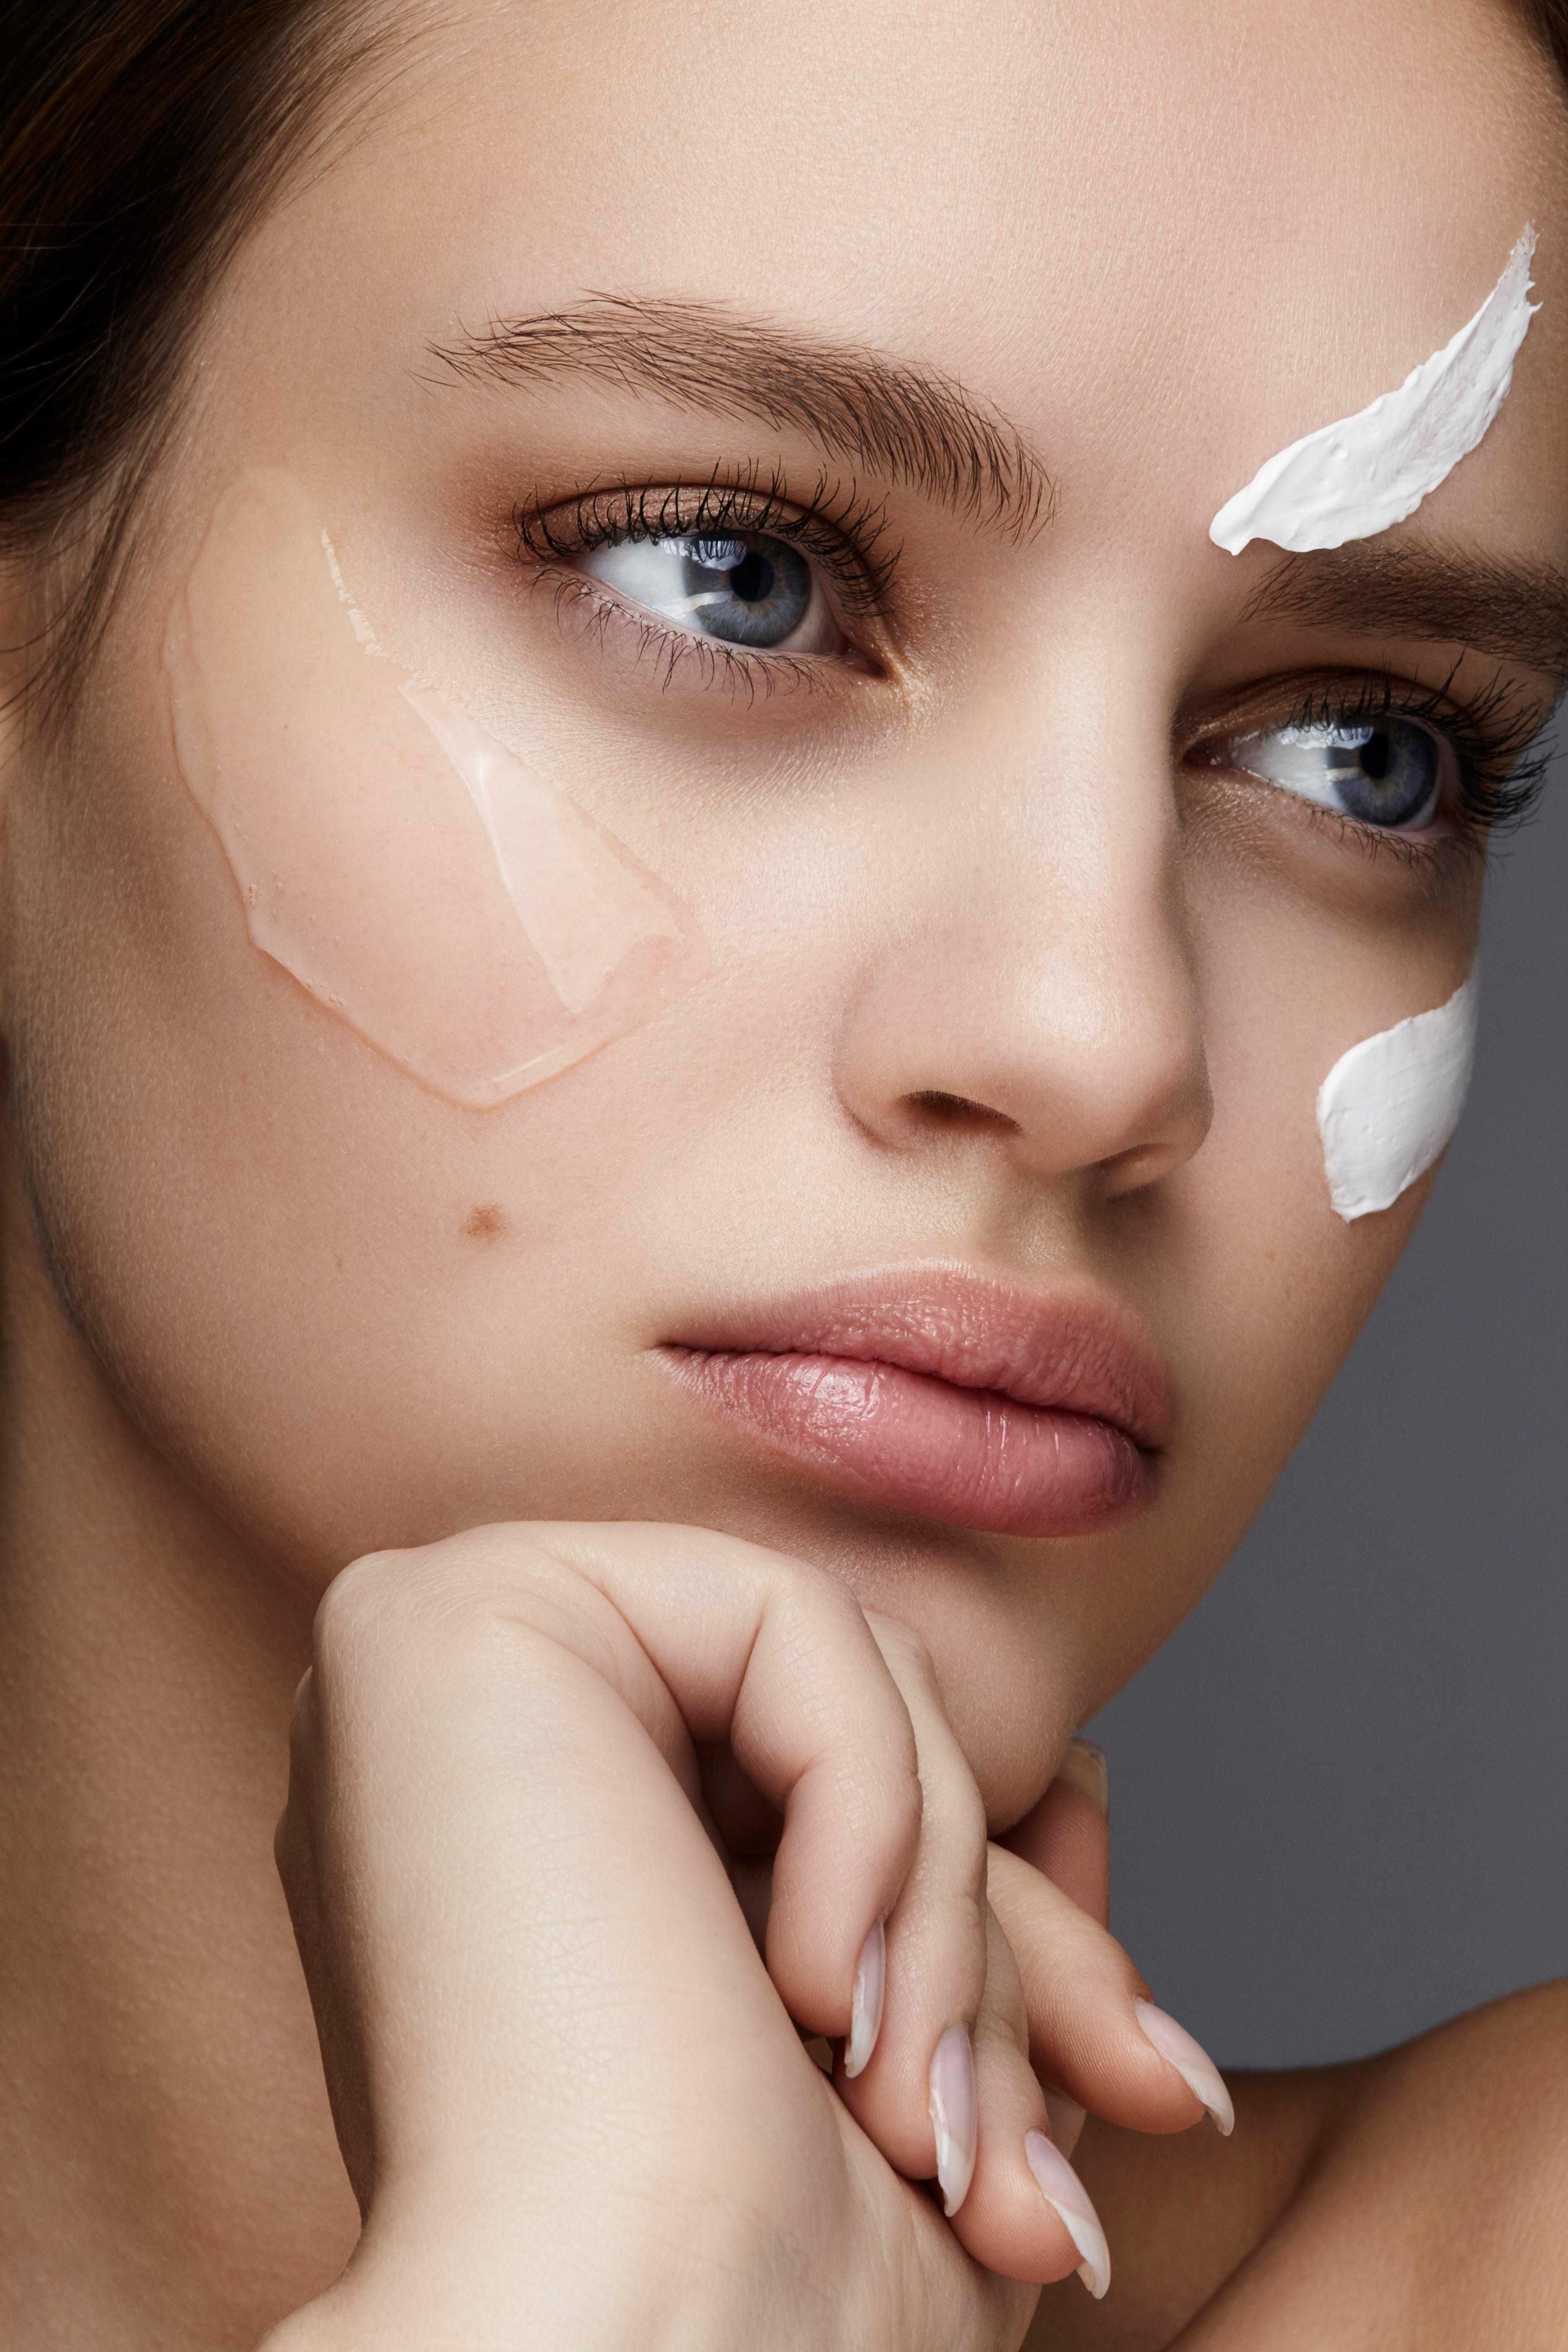 It's important to approach retinol products with caution, claim experts